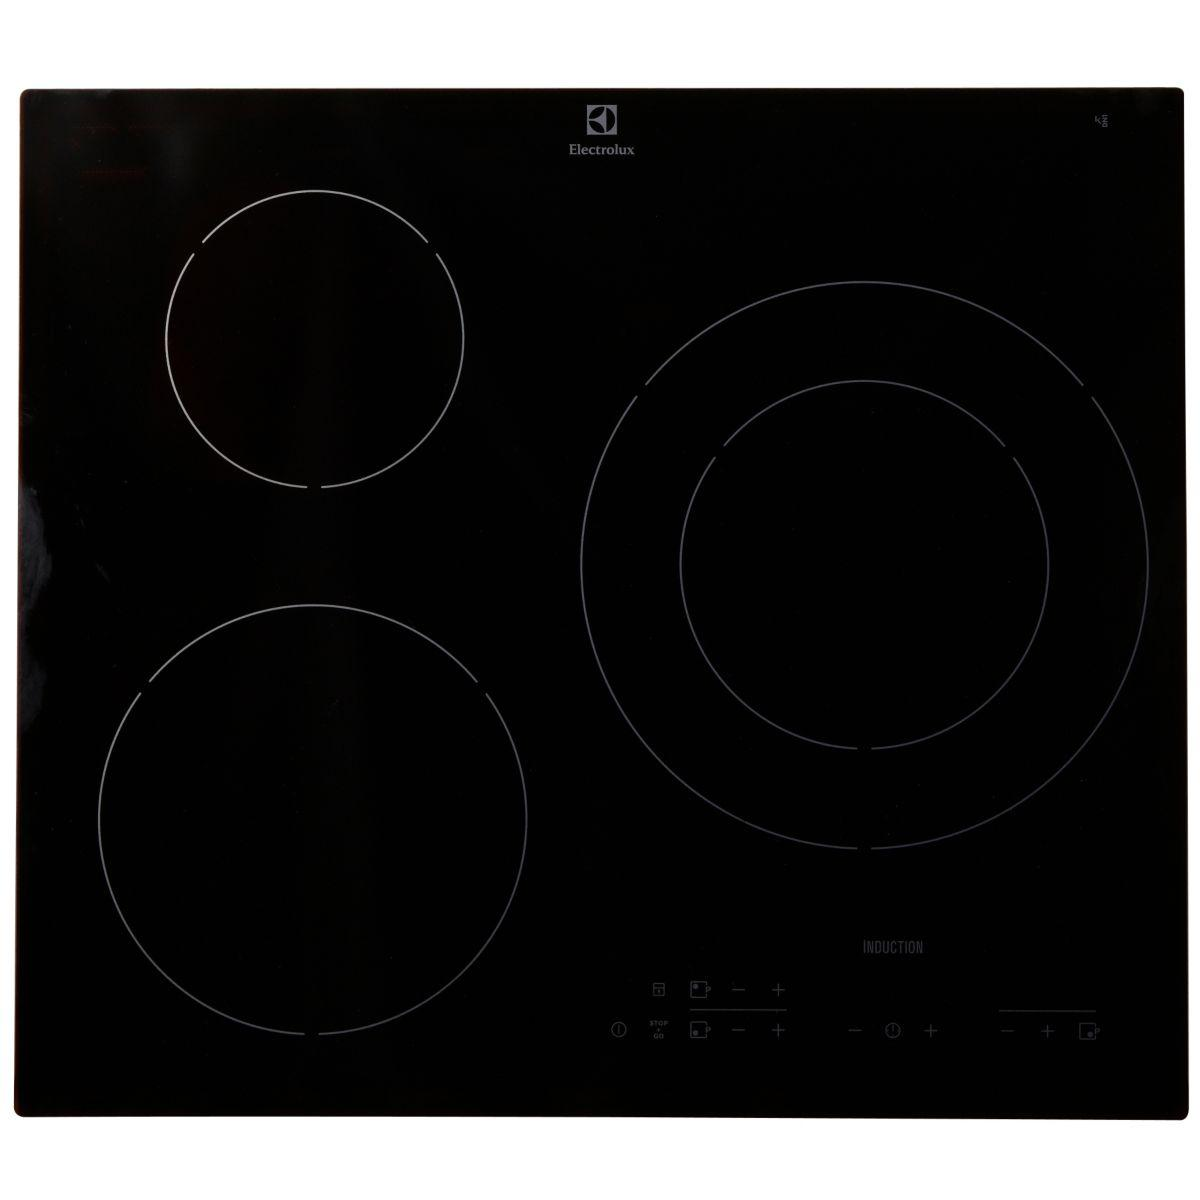 Cuisson electrolux table induction - Table de cuisson induction electrolux ...